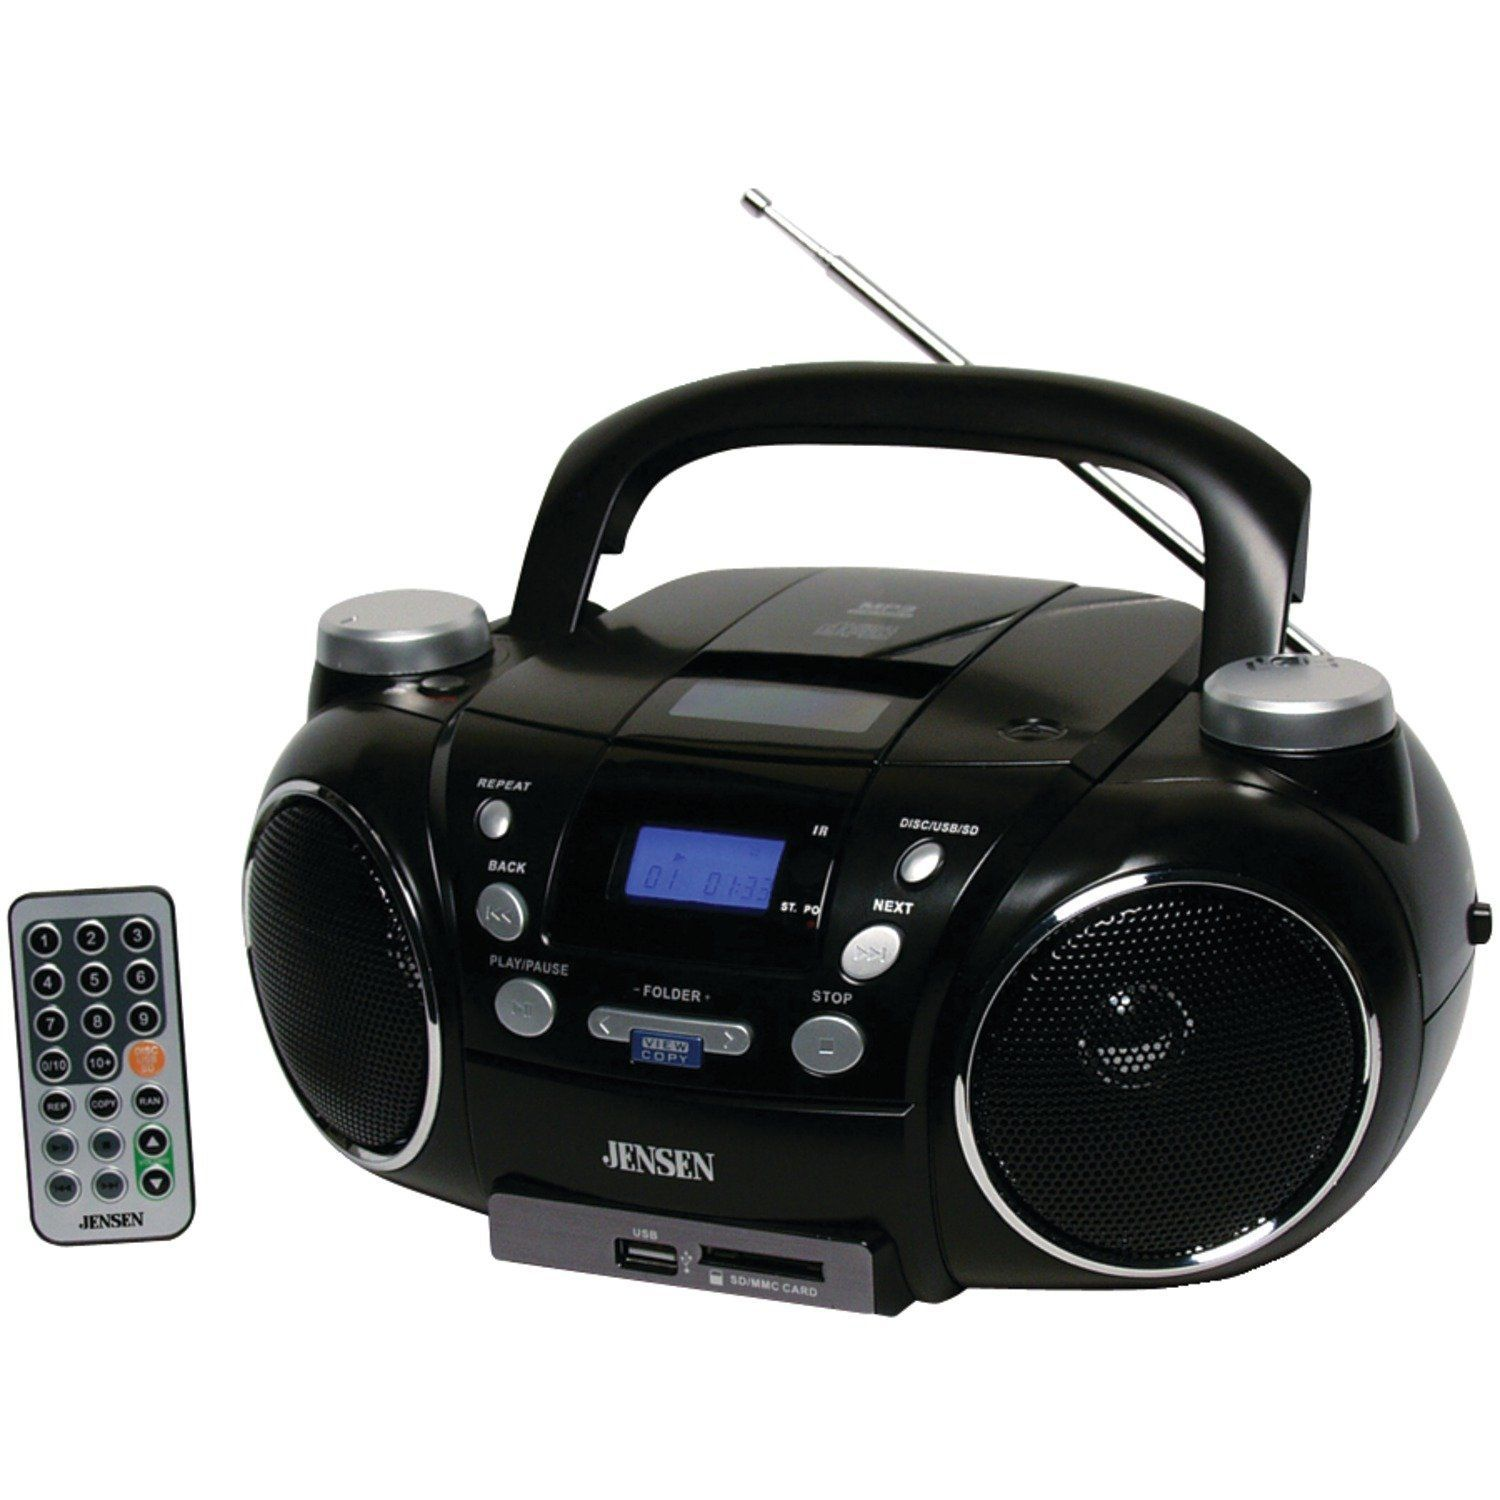 Jensen Portable Am And Fm Stereo Cd Player With Mp3 Encoder And Player